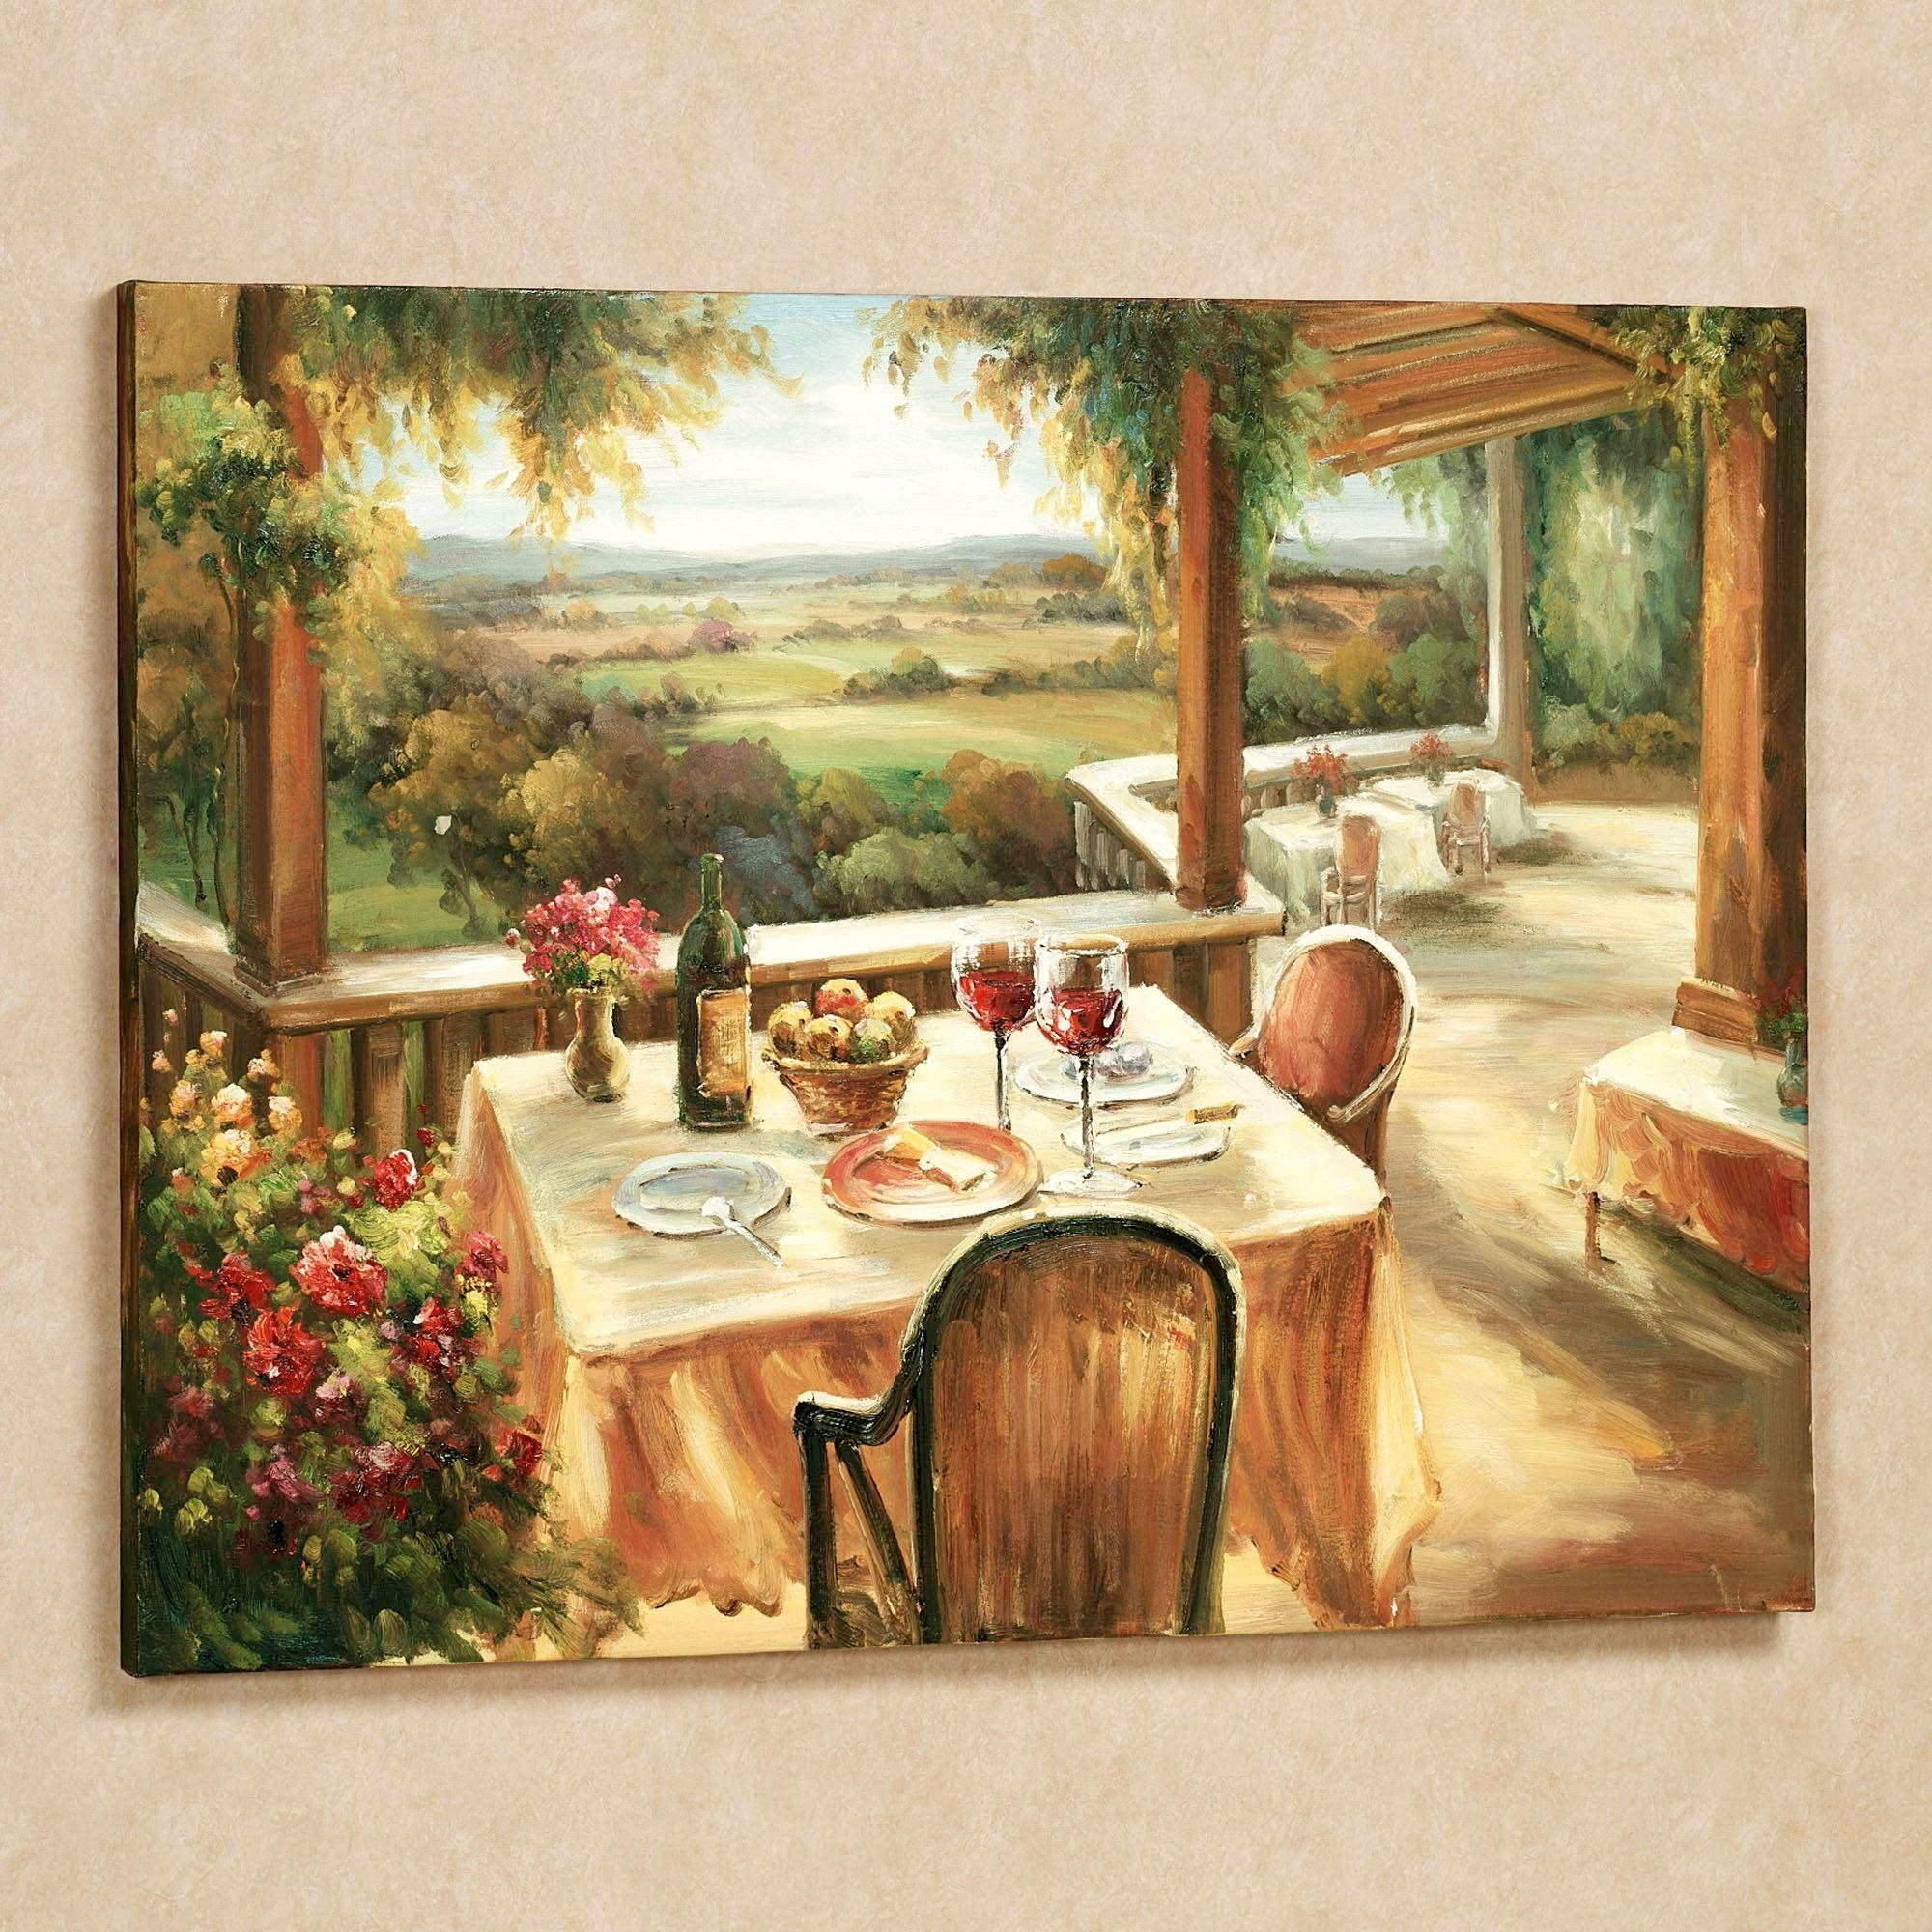 Home Decor Wall Art Tags : Awesome Kitchen Artwork Design Wrought Throughout Italian Nursery Wall Art (Image 8 of 20)